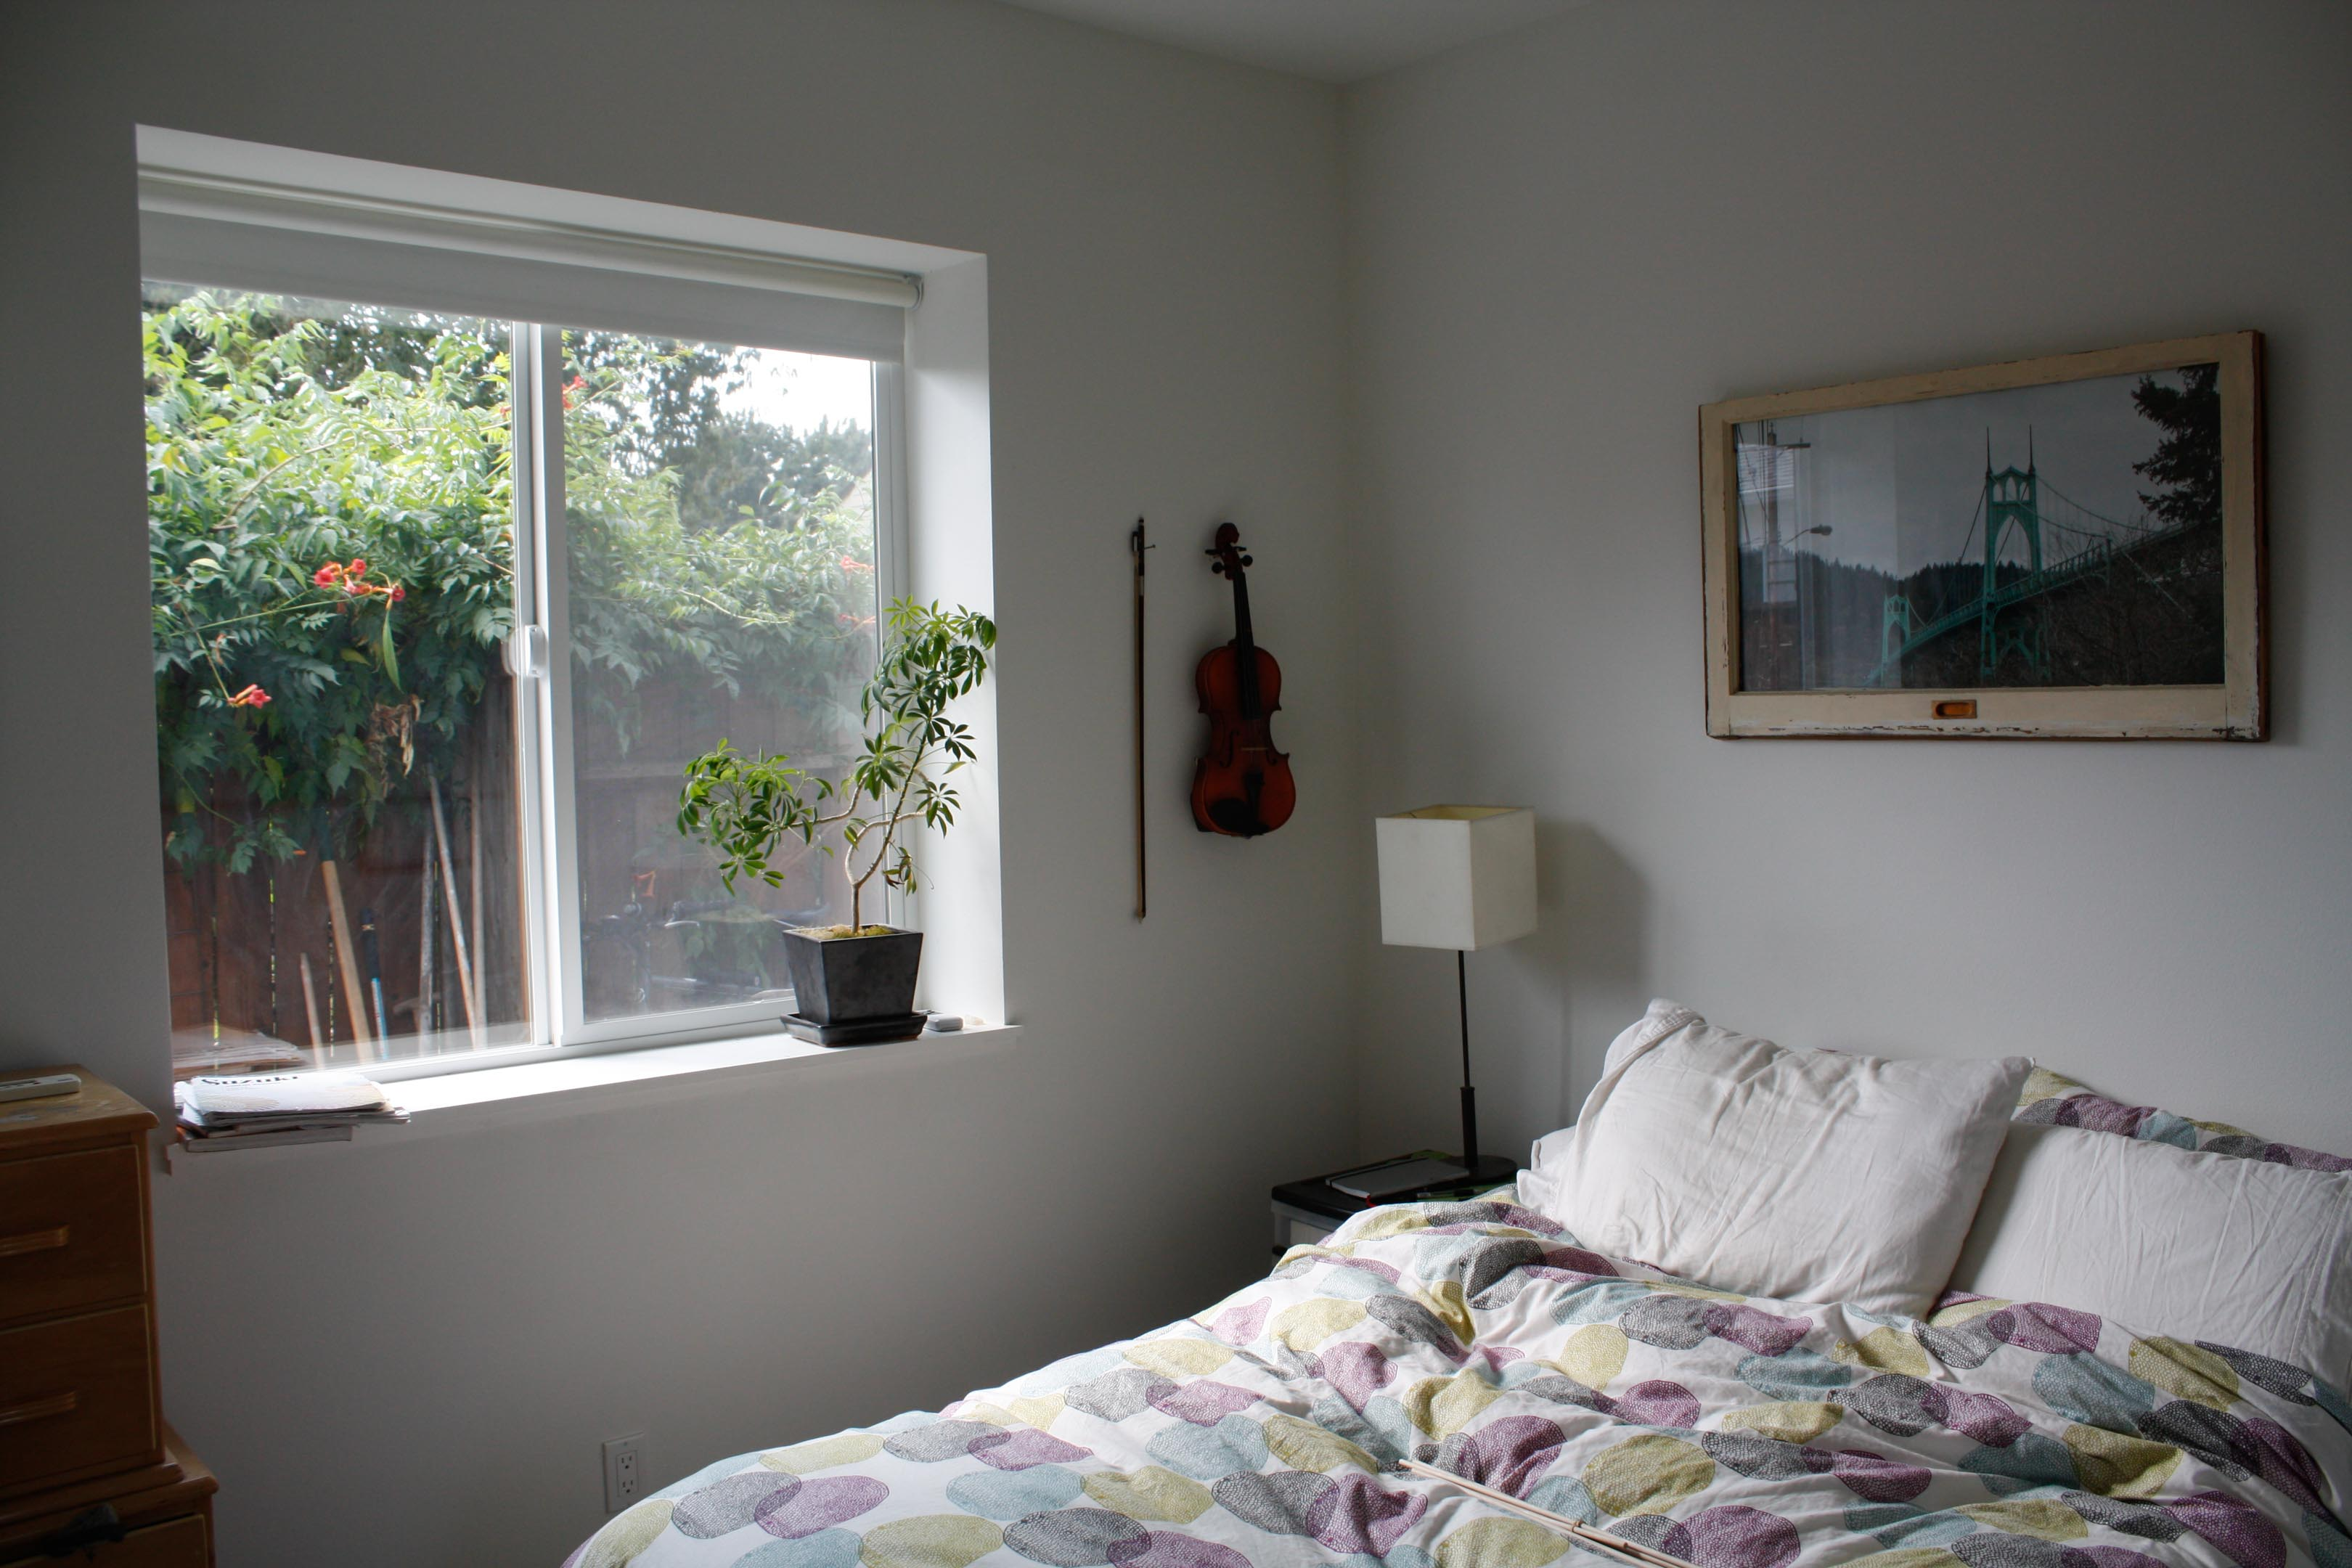 Sumner ADU - Bedroom